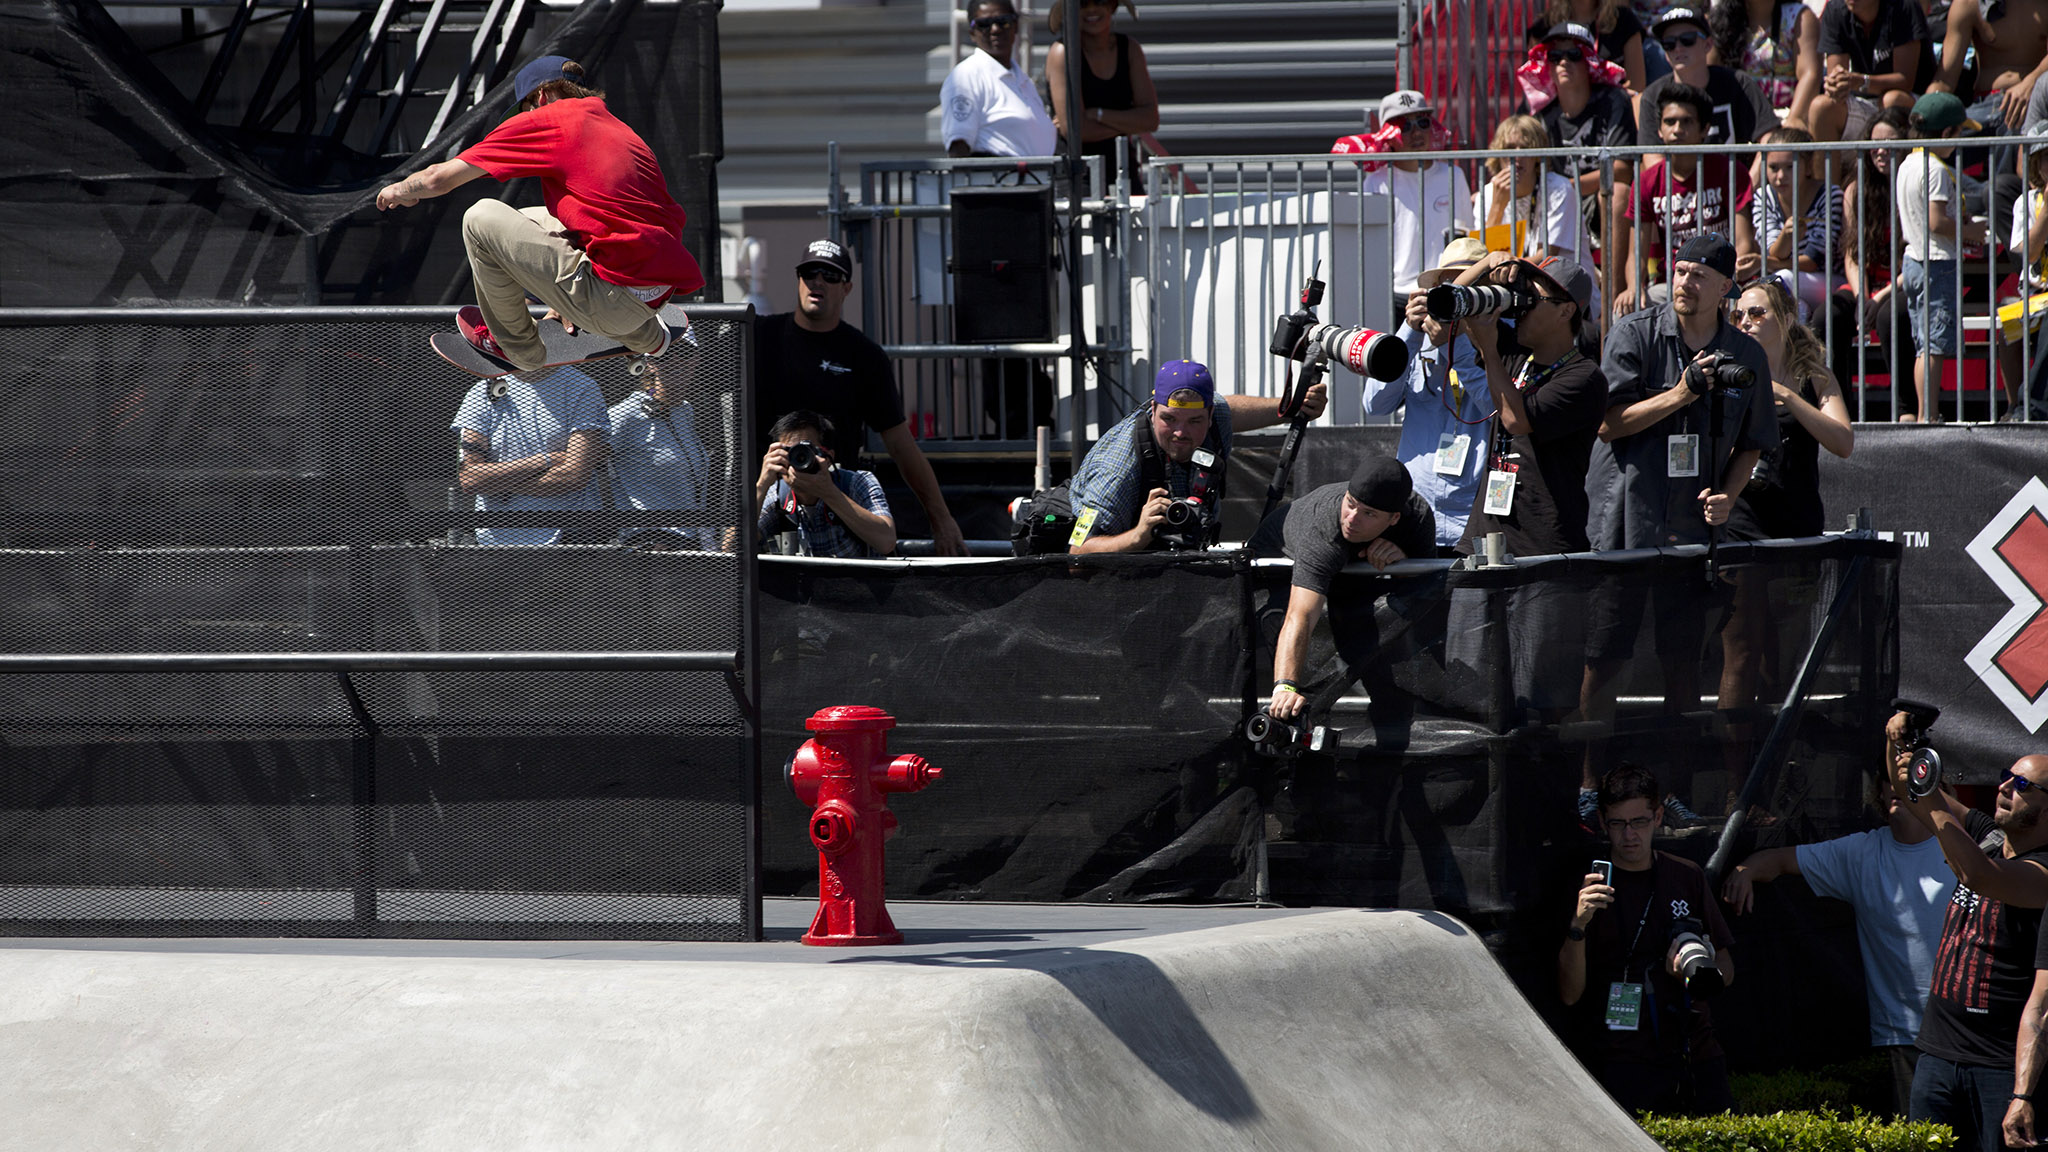 Ryan Sheckler, seen here at X Games Los Angeles 2012, is still the youngest gold medalist in X Games history. (Sheckler won gold in 2003 at age 13.)